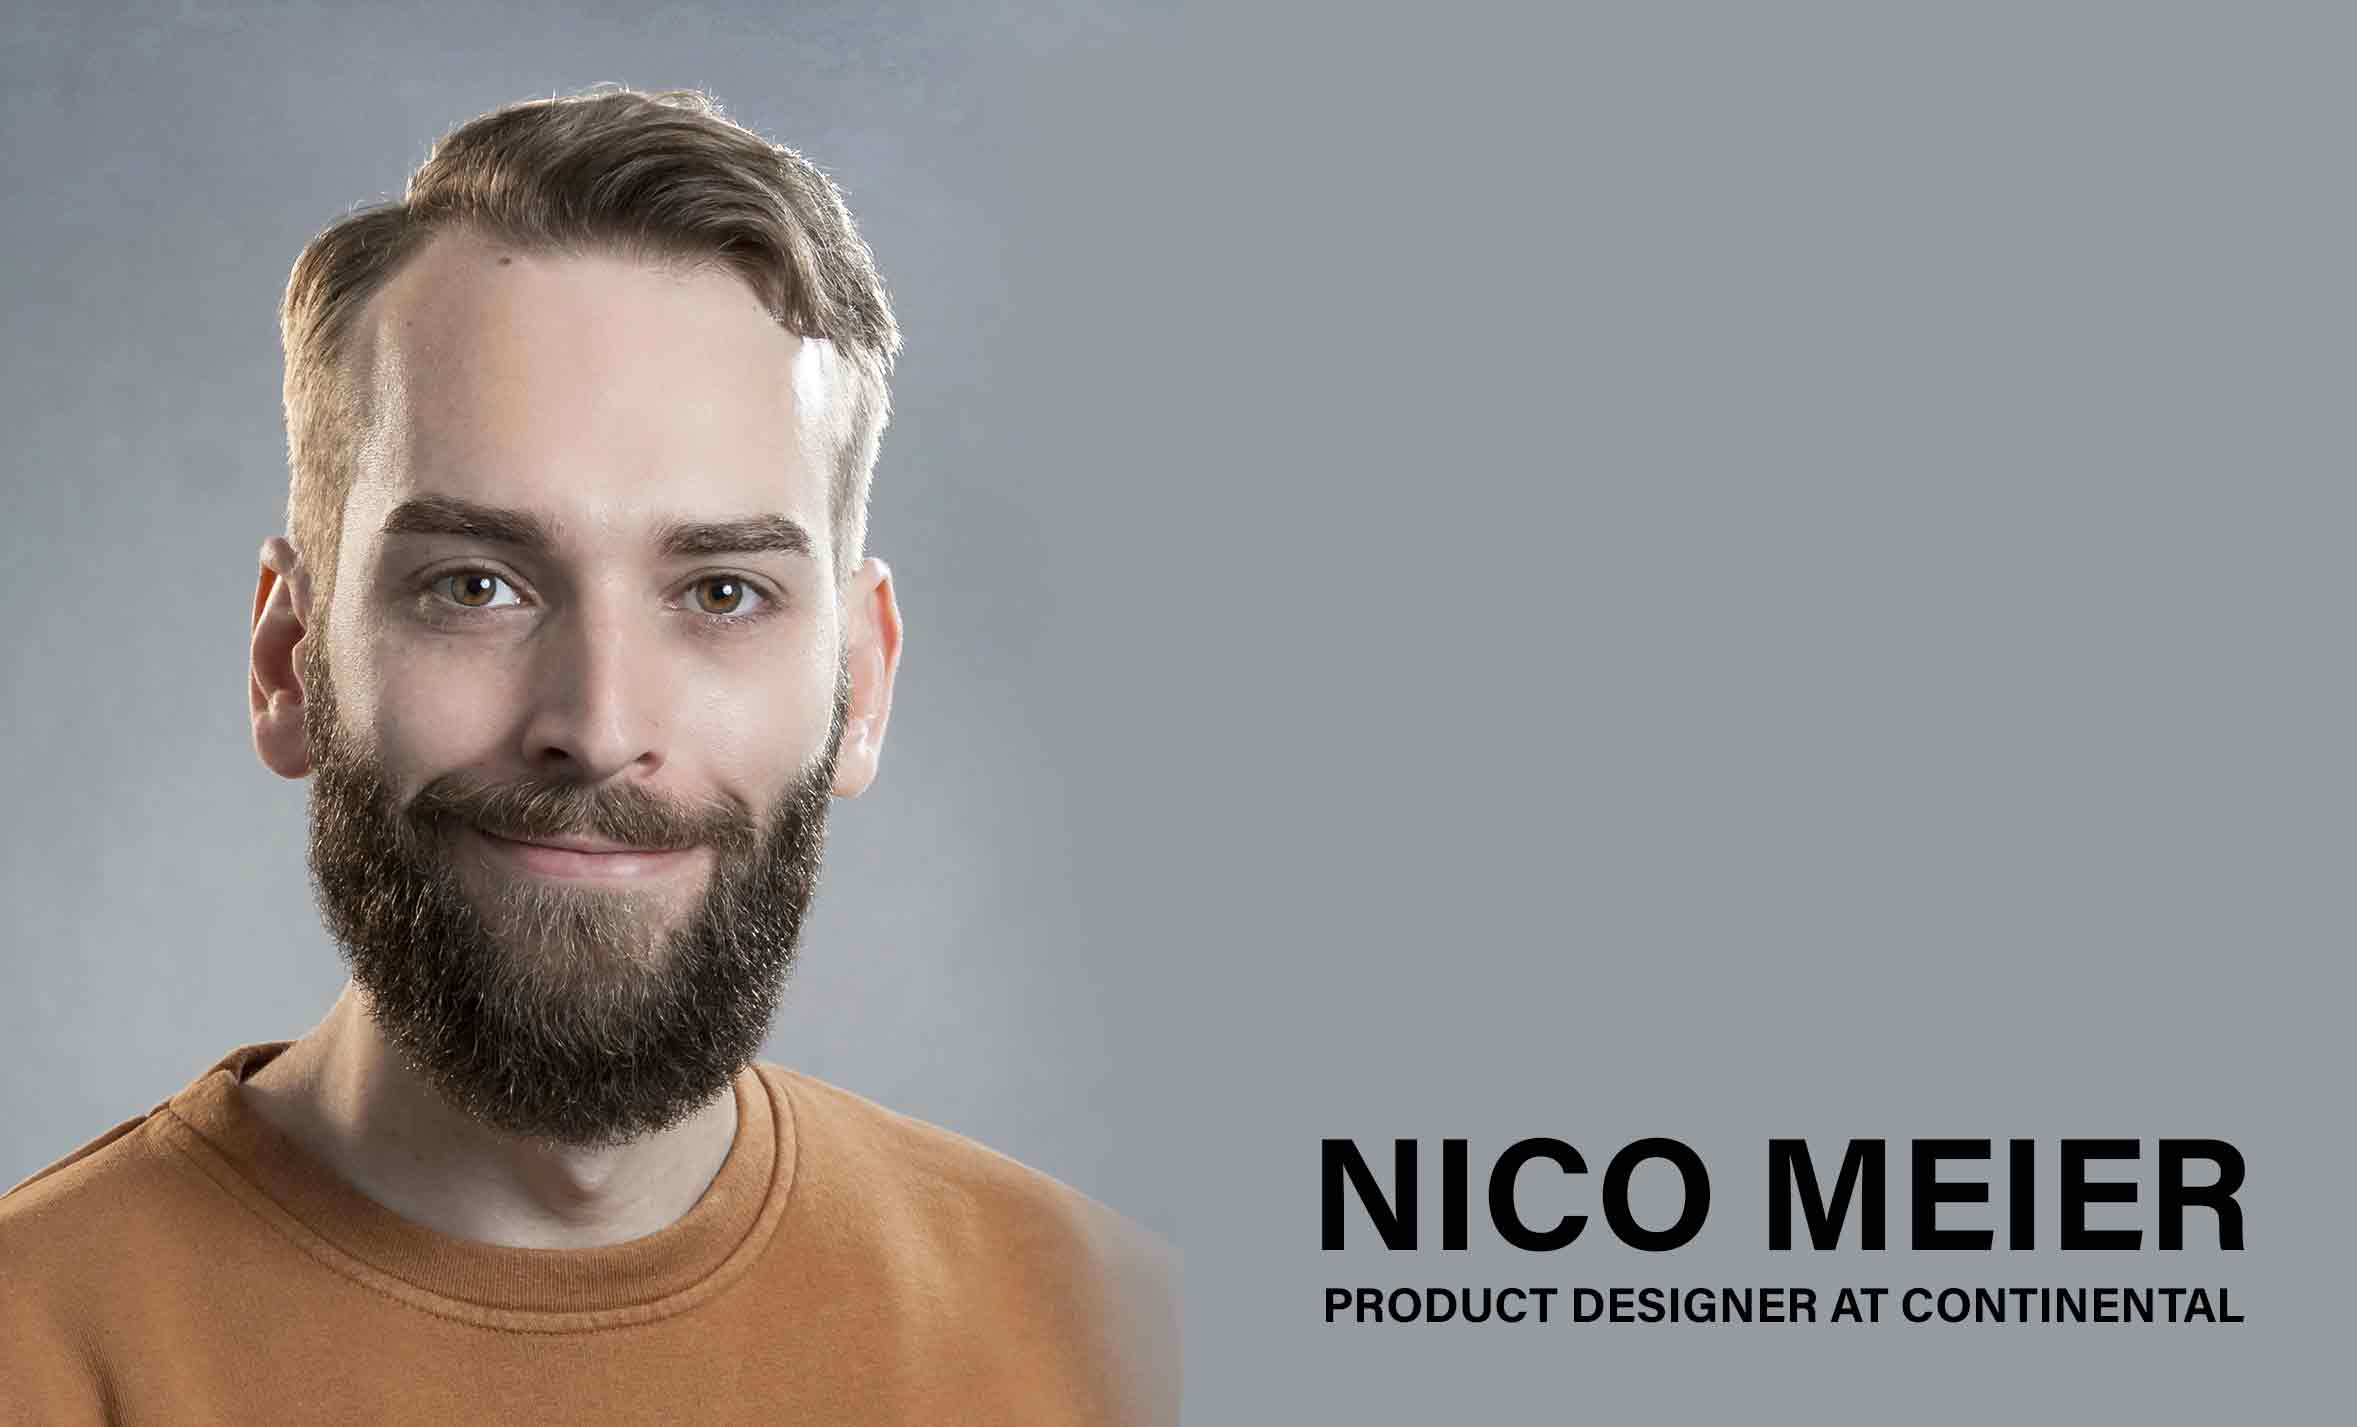 Interview with Nico Meier – Product designer at Continental